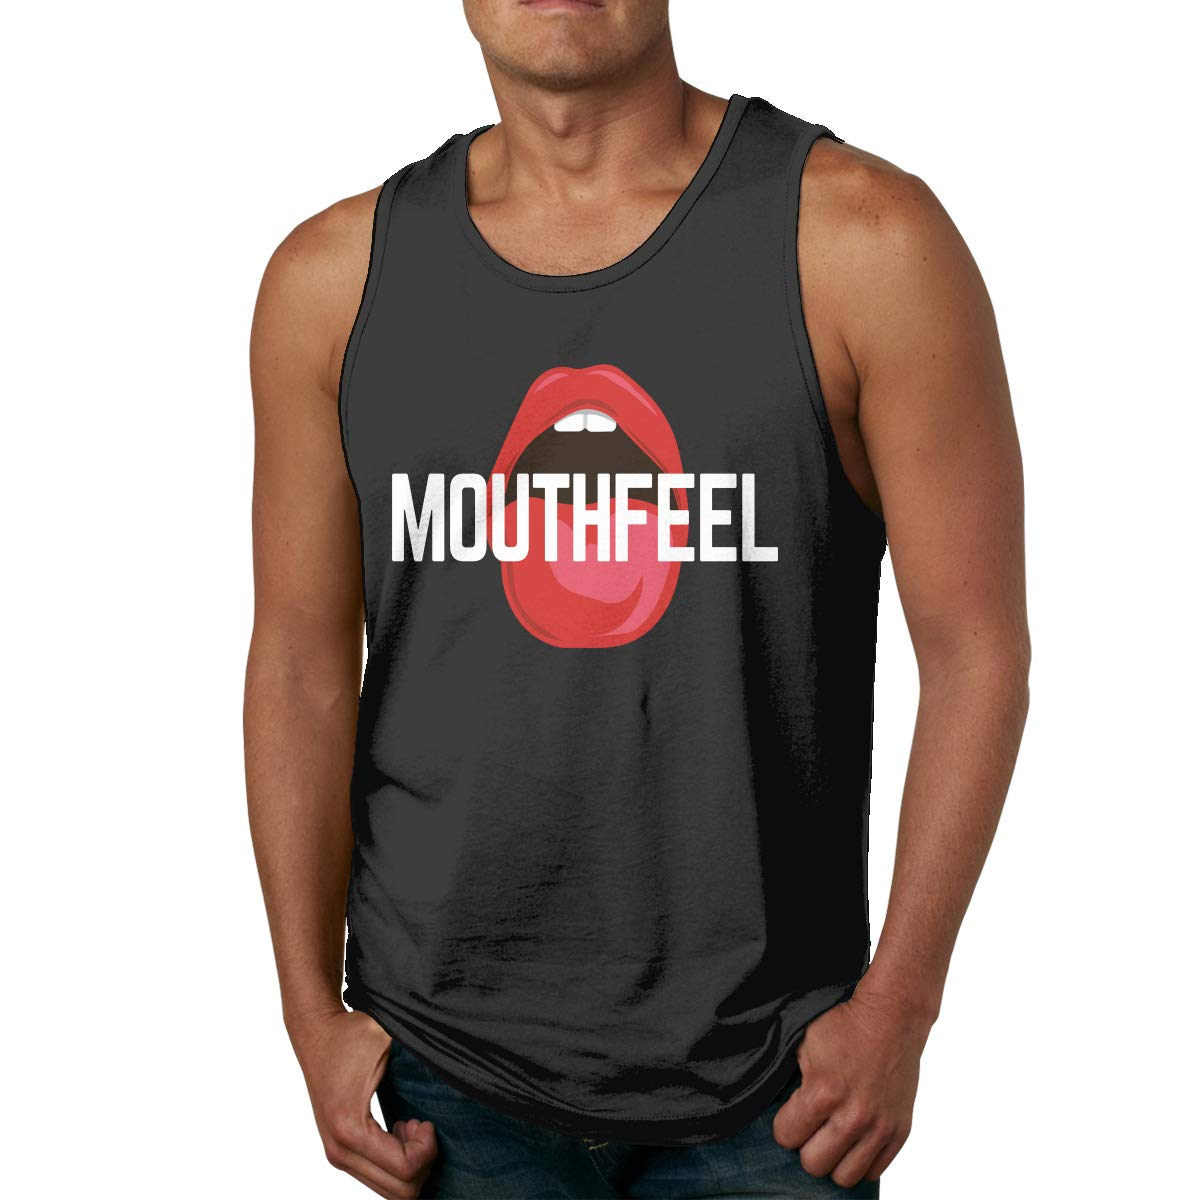 Mouthfeel Mens Sleeveless Activewear Top Jersey